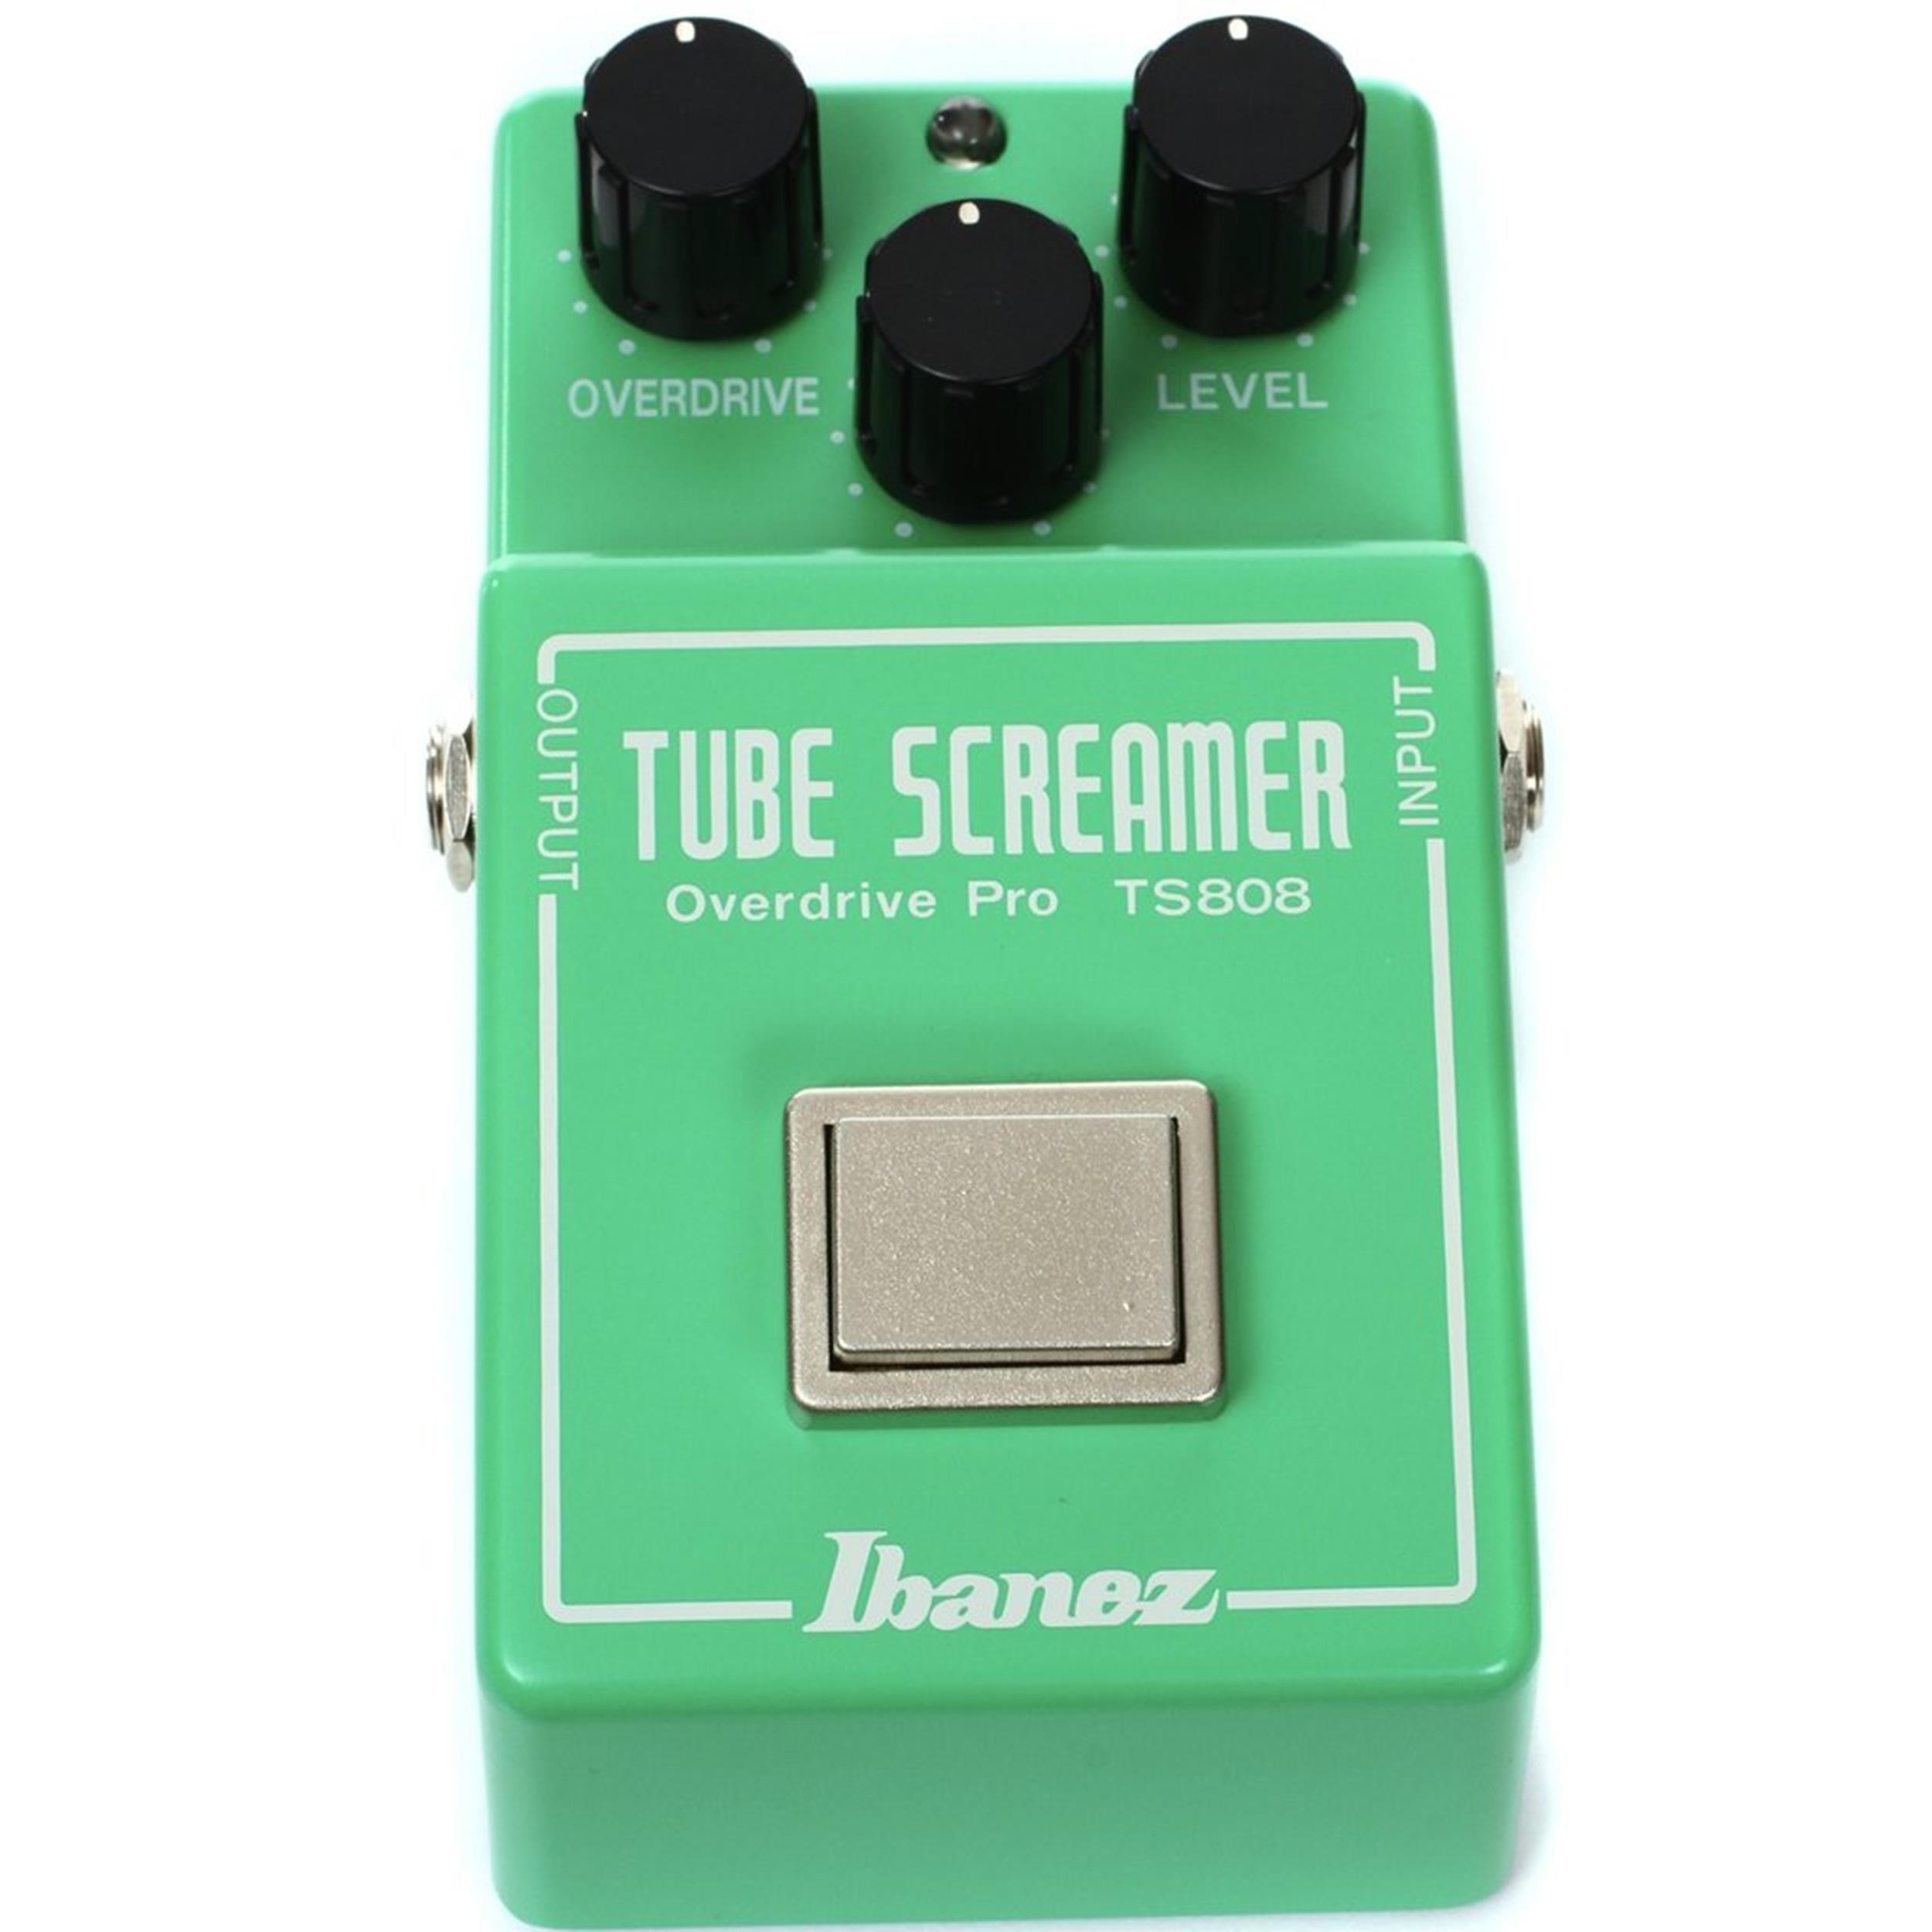 IBANEZ TS808 TUBE SCREAMER PRO